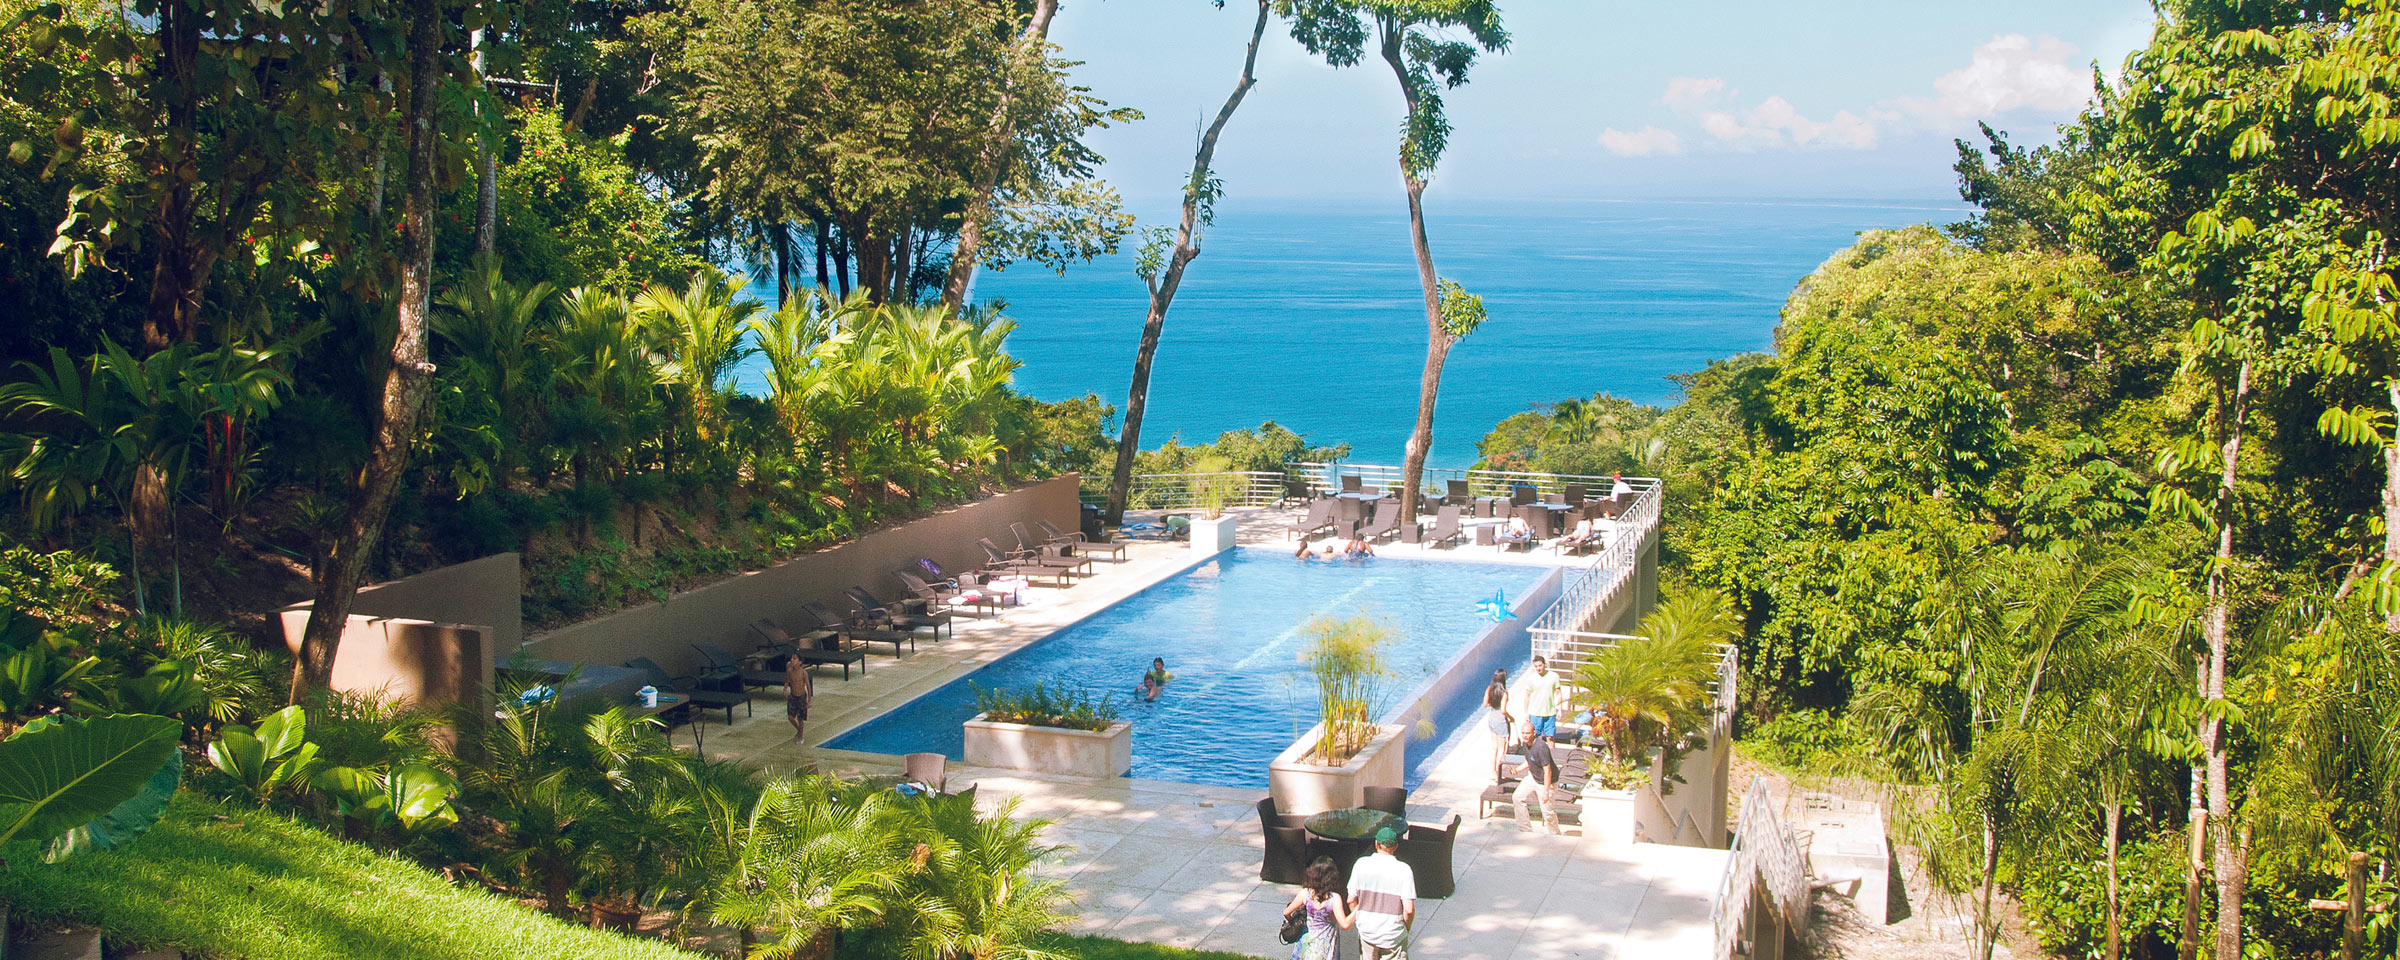 Los Altos Beach Resort & Spa - Manuel Antonio Costa Rica